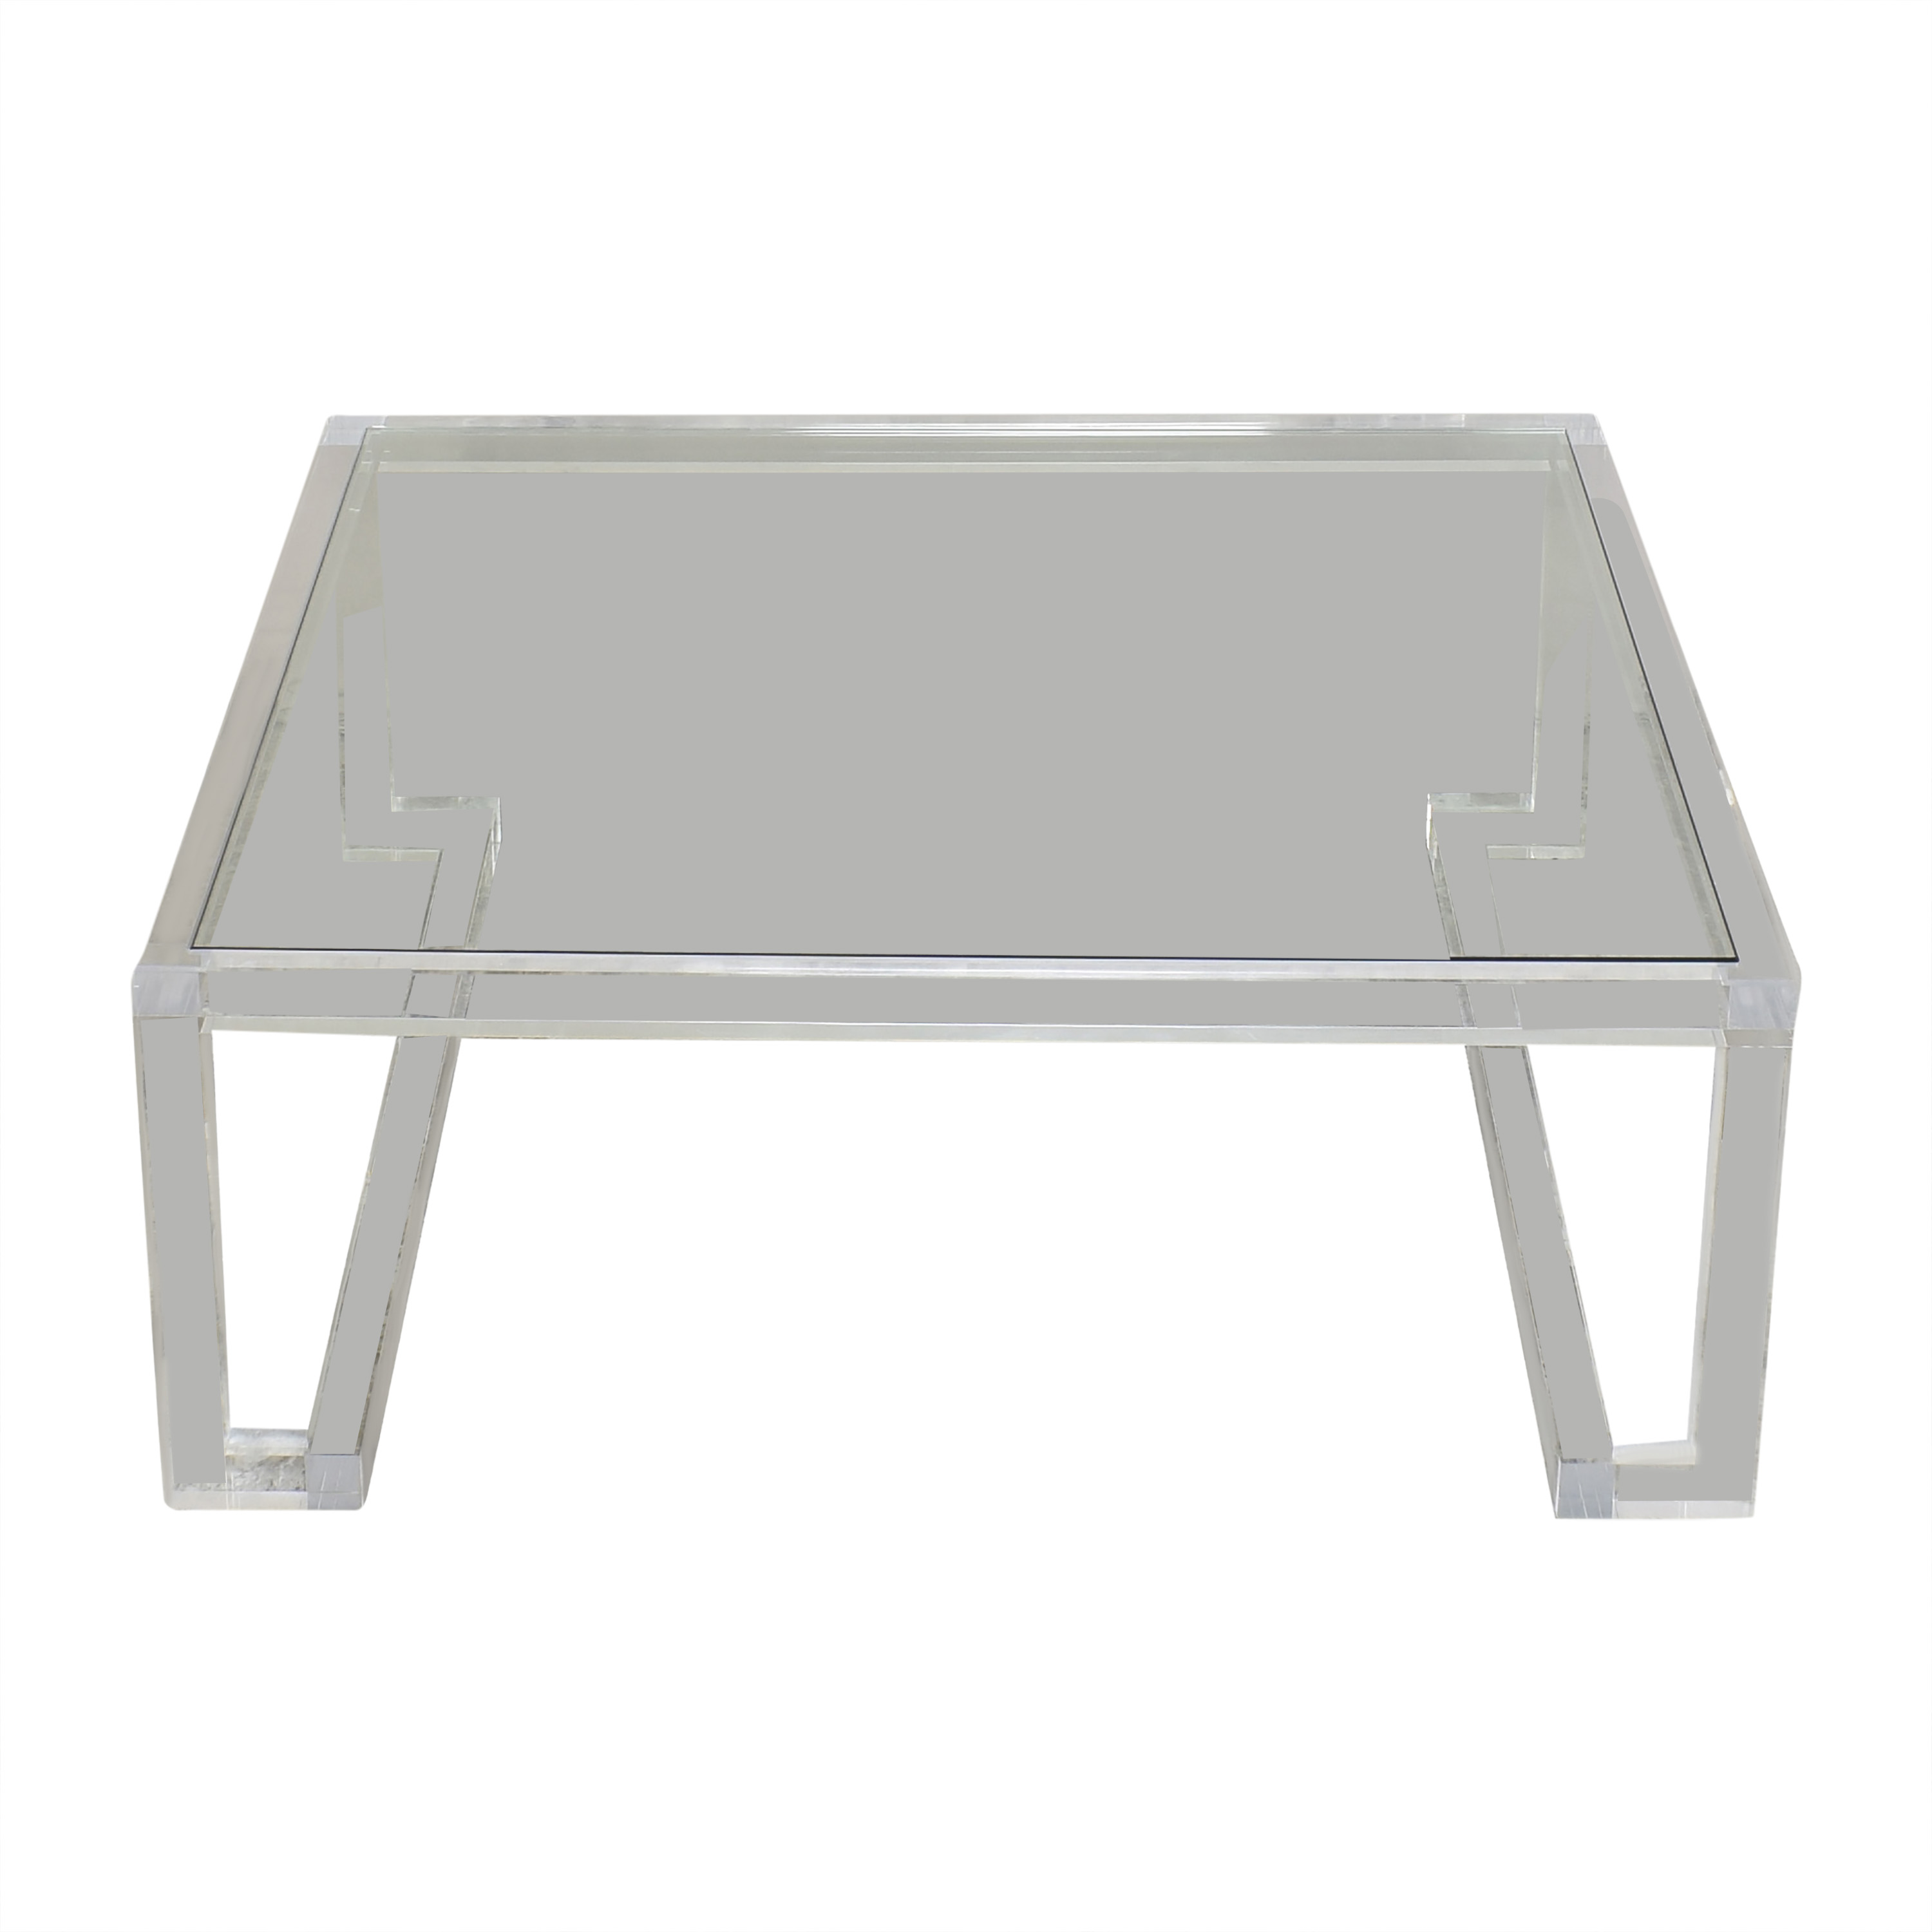 Interlude Home Interlude Home Coffee Table clear